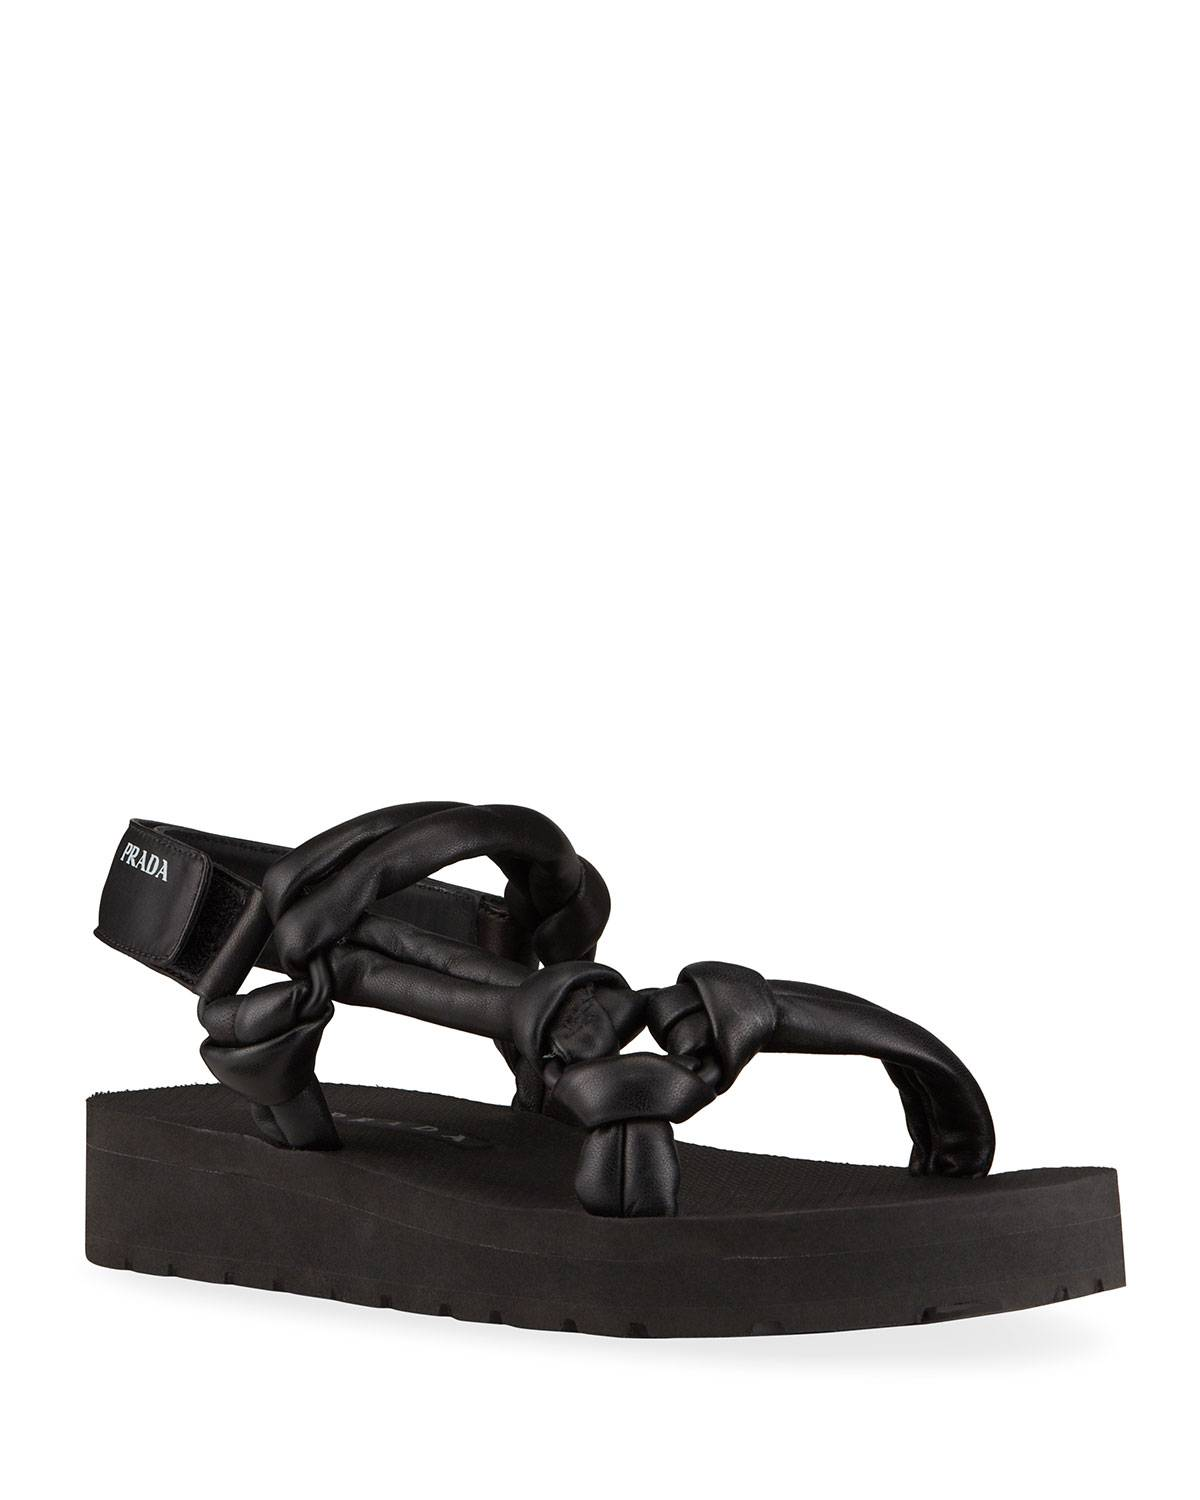 Prada Padded Leather Sport Sandals - Size: 10.5B / 40.5EU